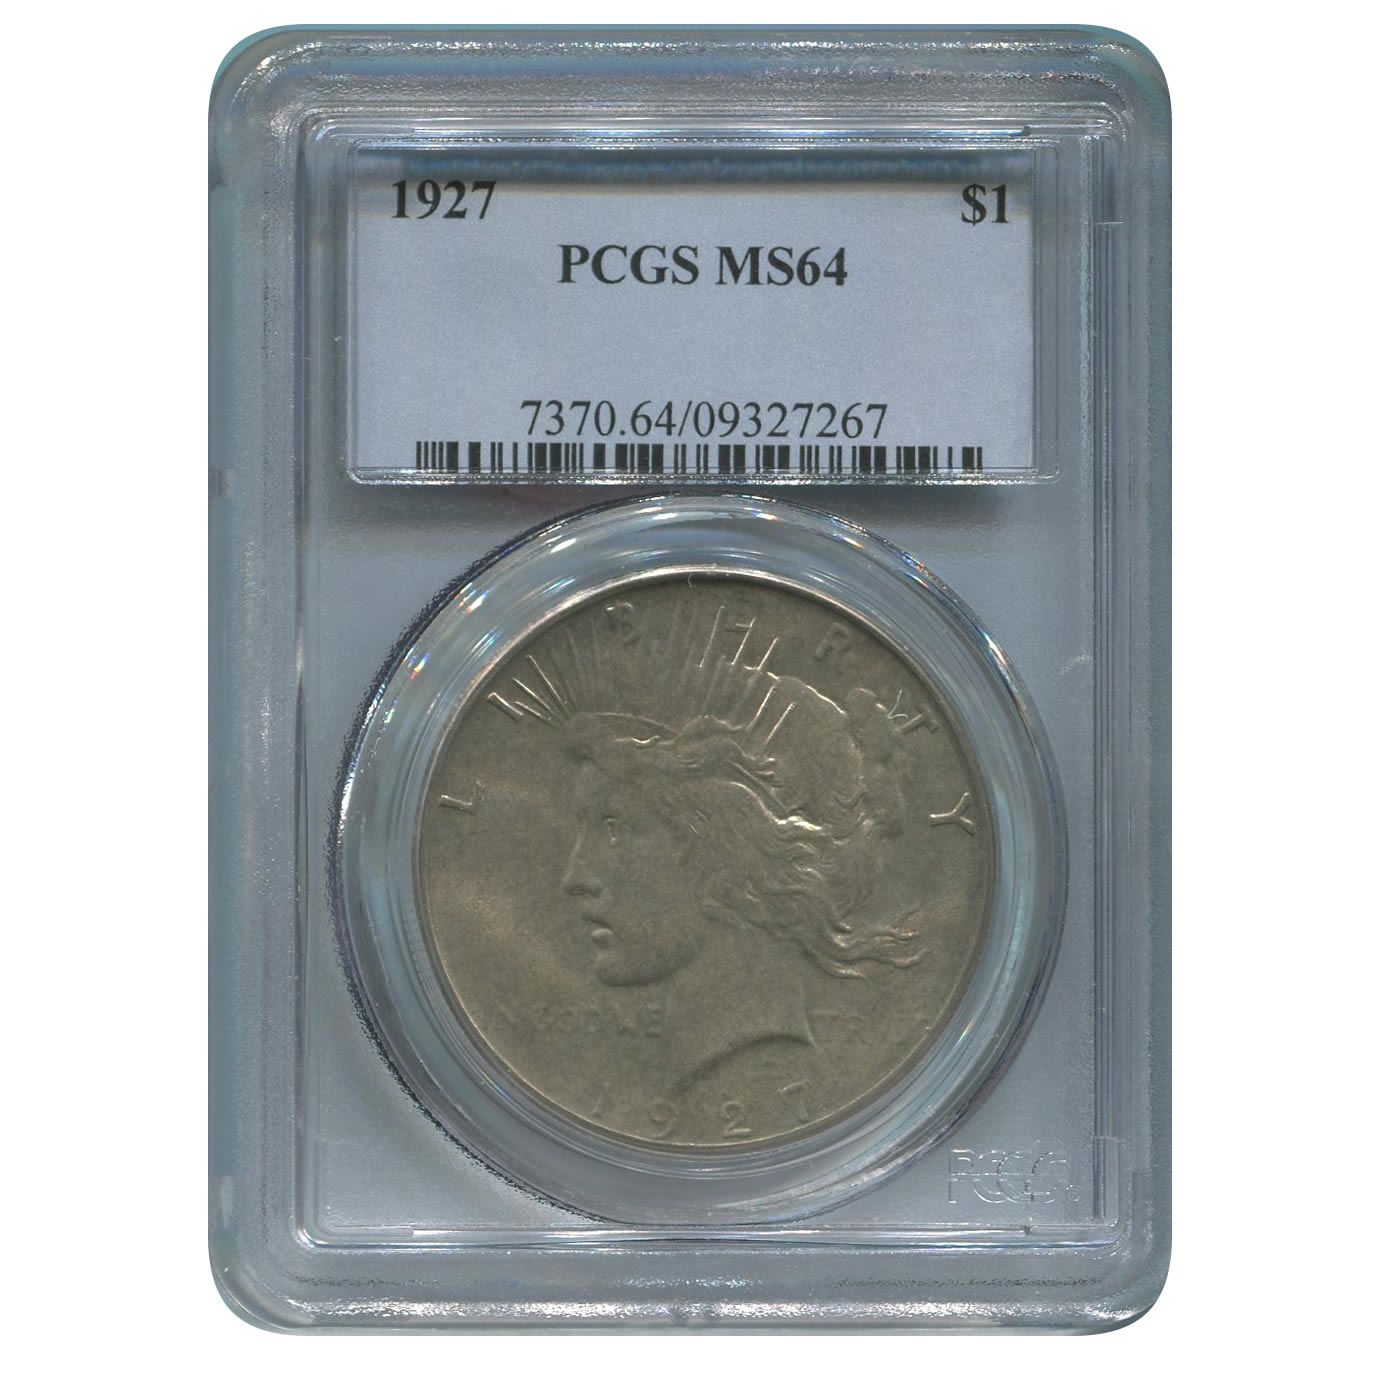 Certified Peace Silver Dollar 1927 MS64 PCGS